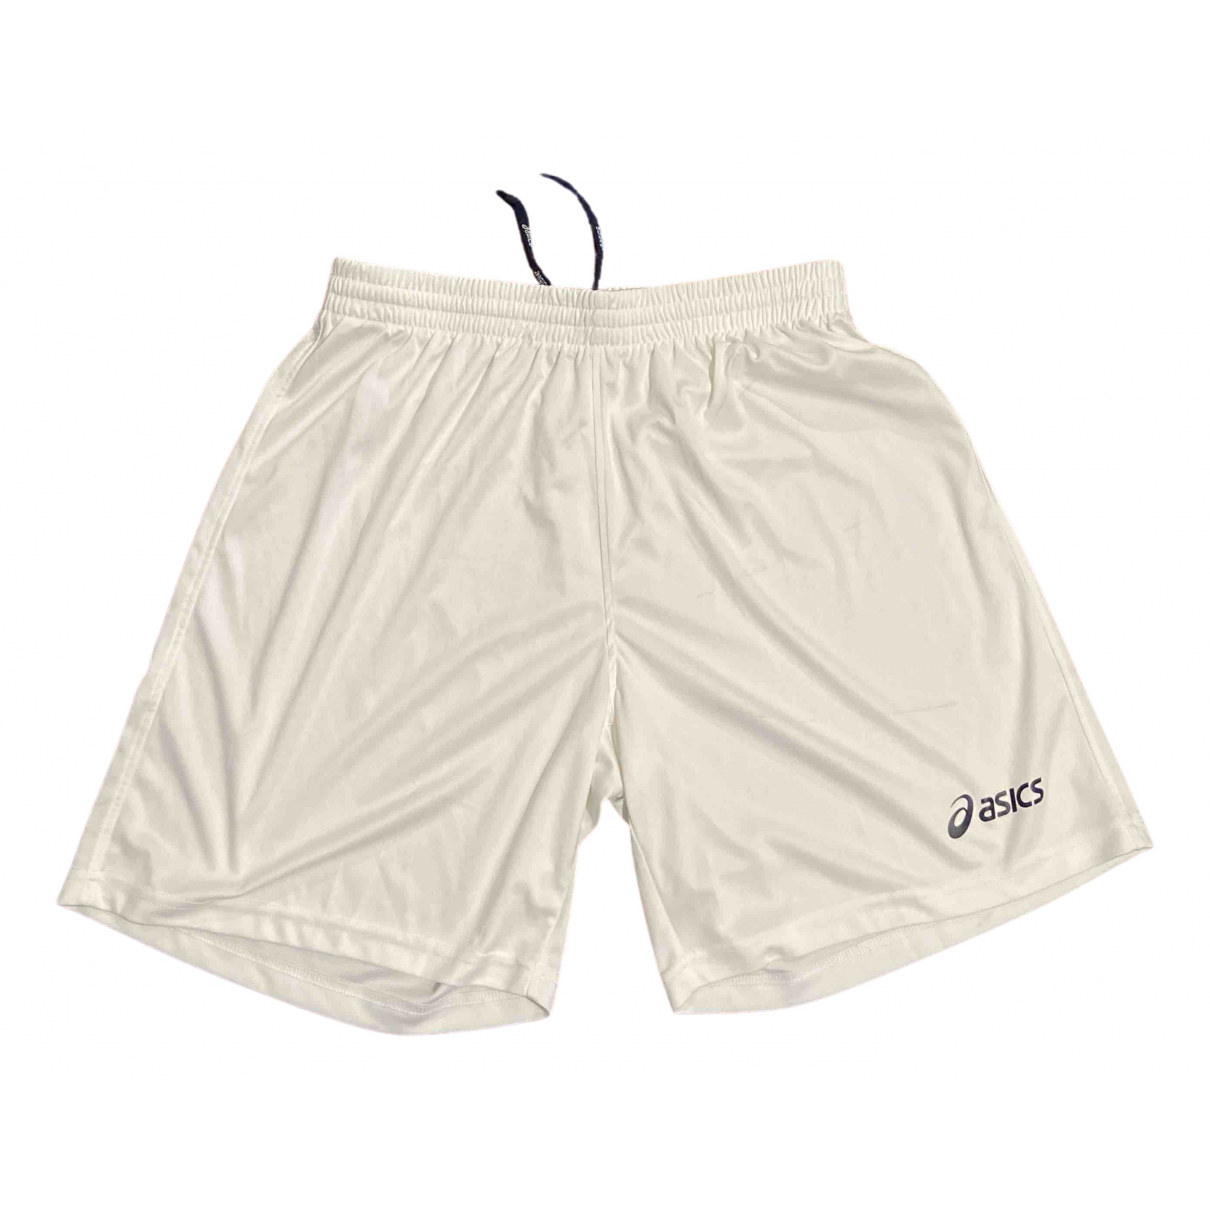 Asics \N Shorts in  Weiss Polyester